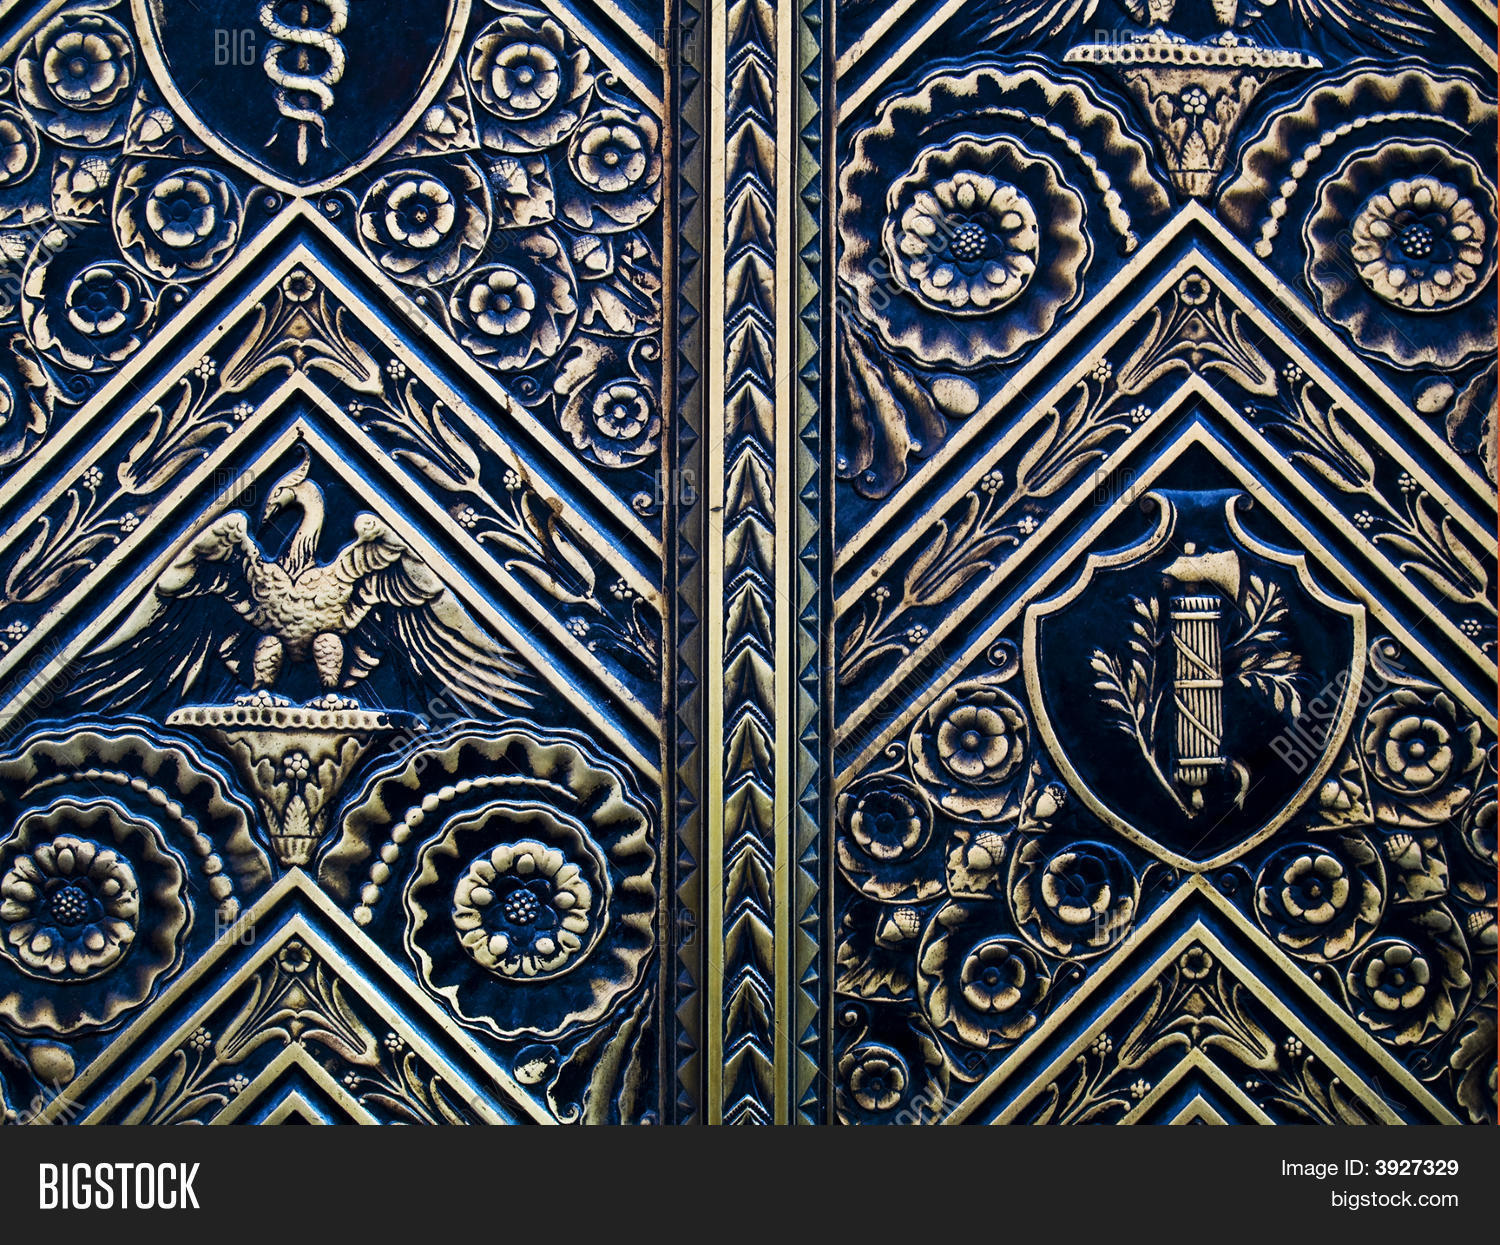 carvings,castle,doors,gothic,maryland,metal,old,relief,texture,walls